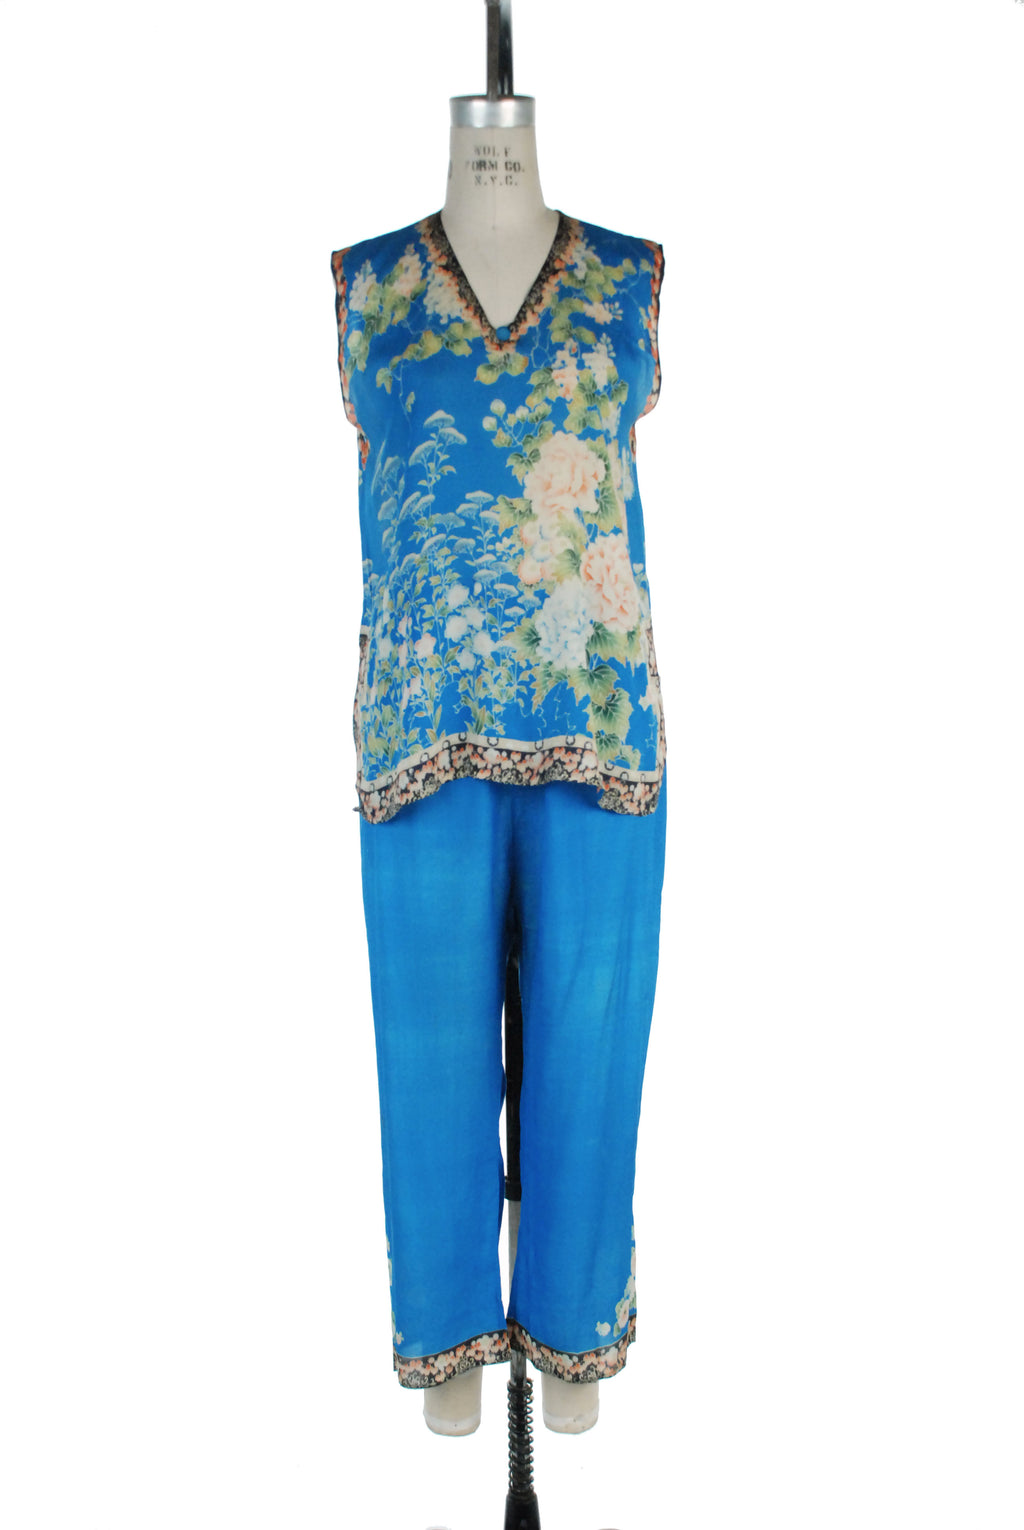 Gorgeous 1920s Chinese Cocktail Pajamas in Blue Pongee Silk with Famille Roses